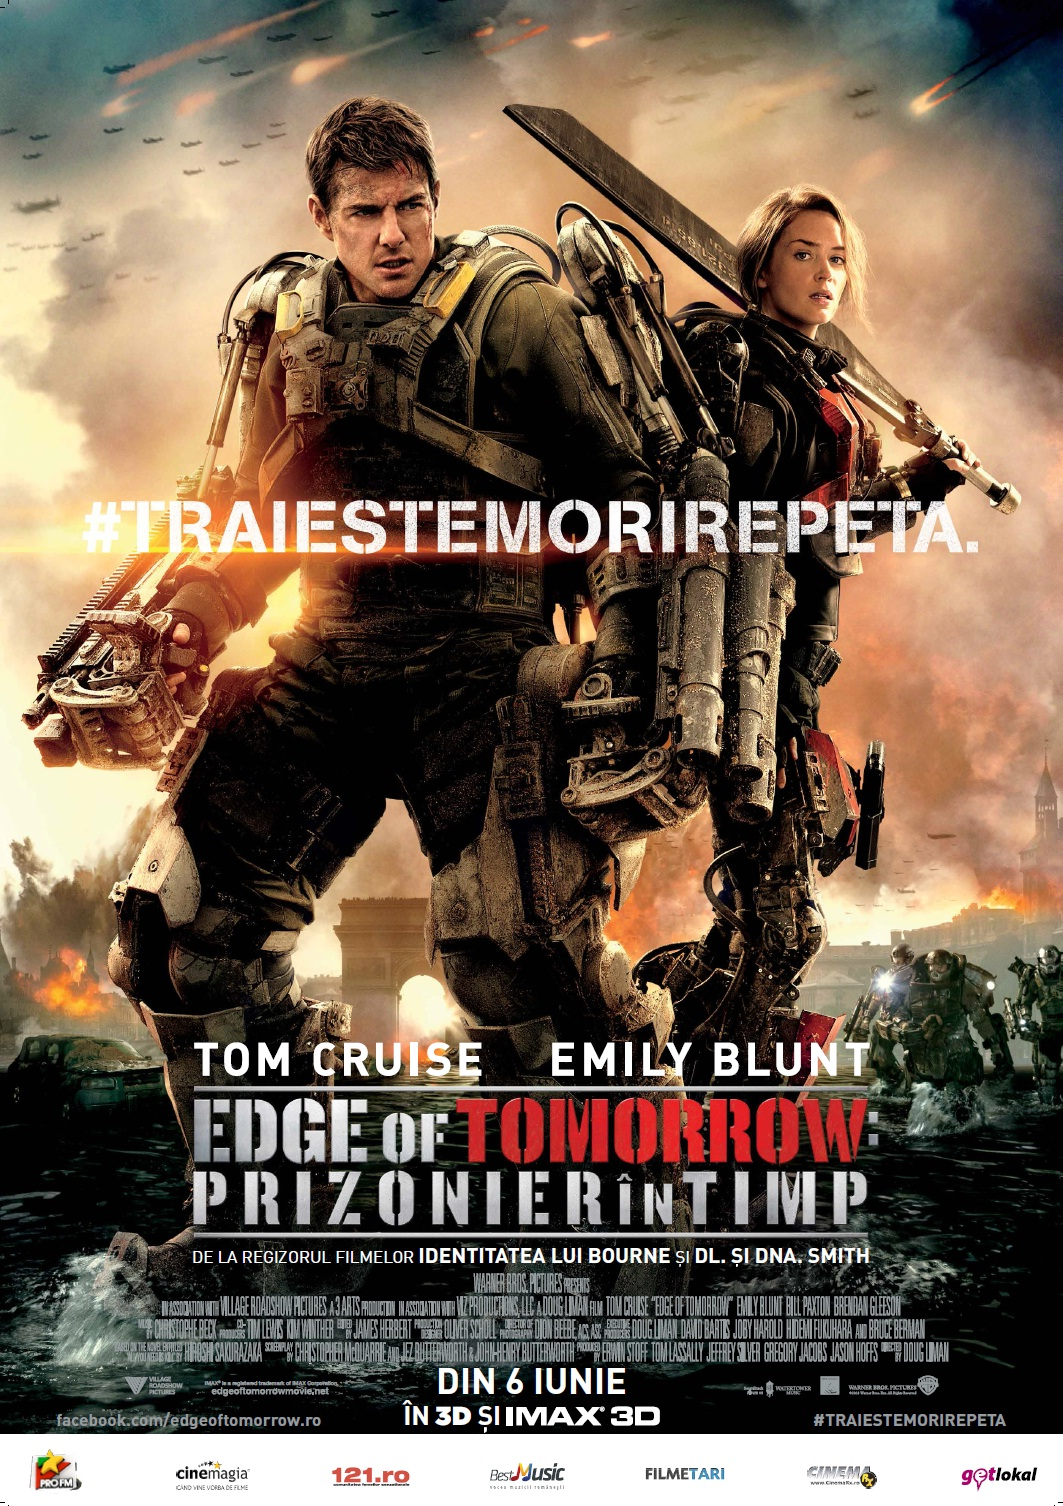 Edge of Tomorrow: Prizonier in timp 3D (Avanpremiera)